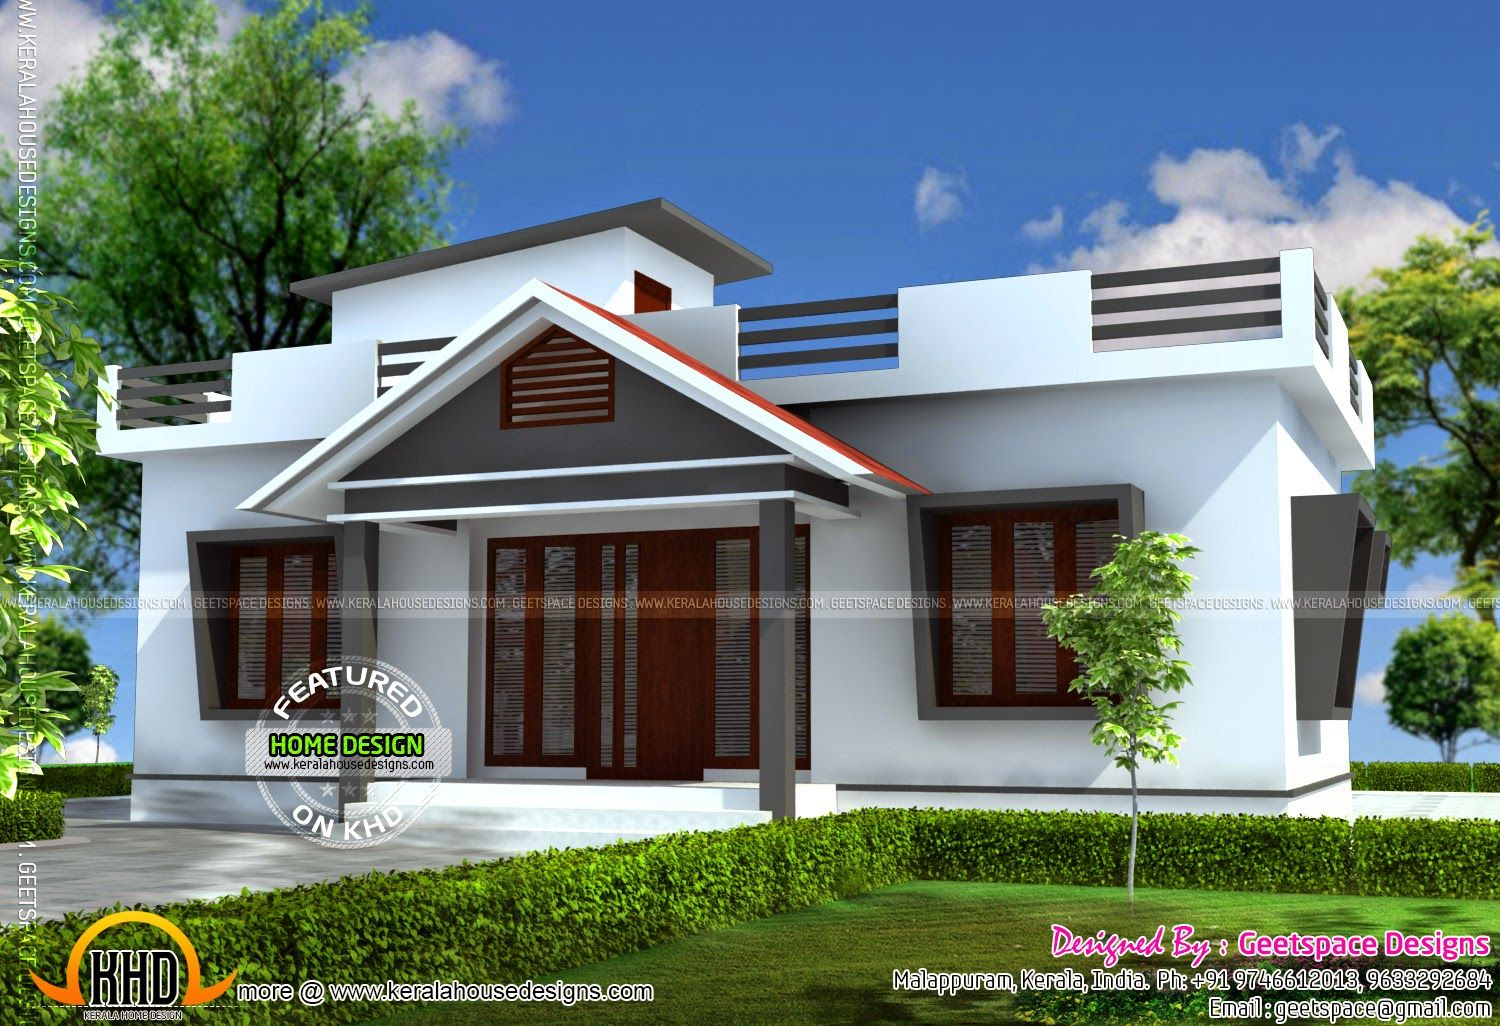 Small House Plans Concentrate On An Effective Use Of Area That Makes The Home Feel Bigger Strong Ou Kerala House Design Home Design Images Simple House Design